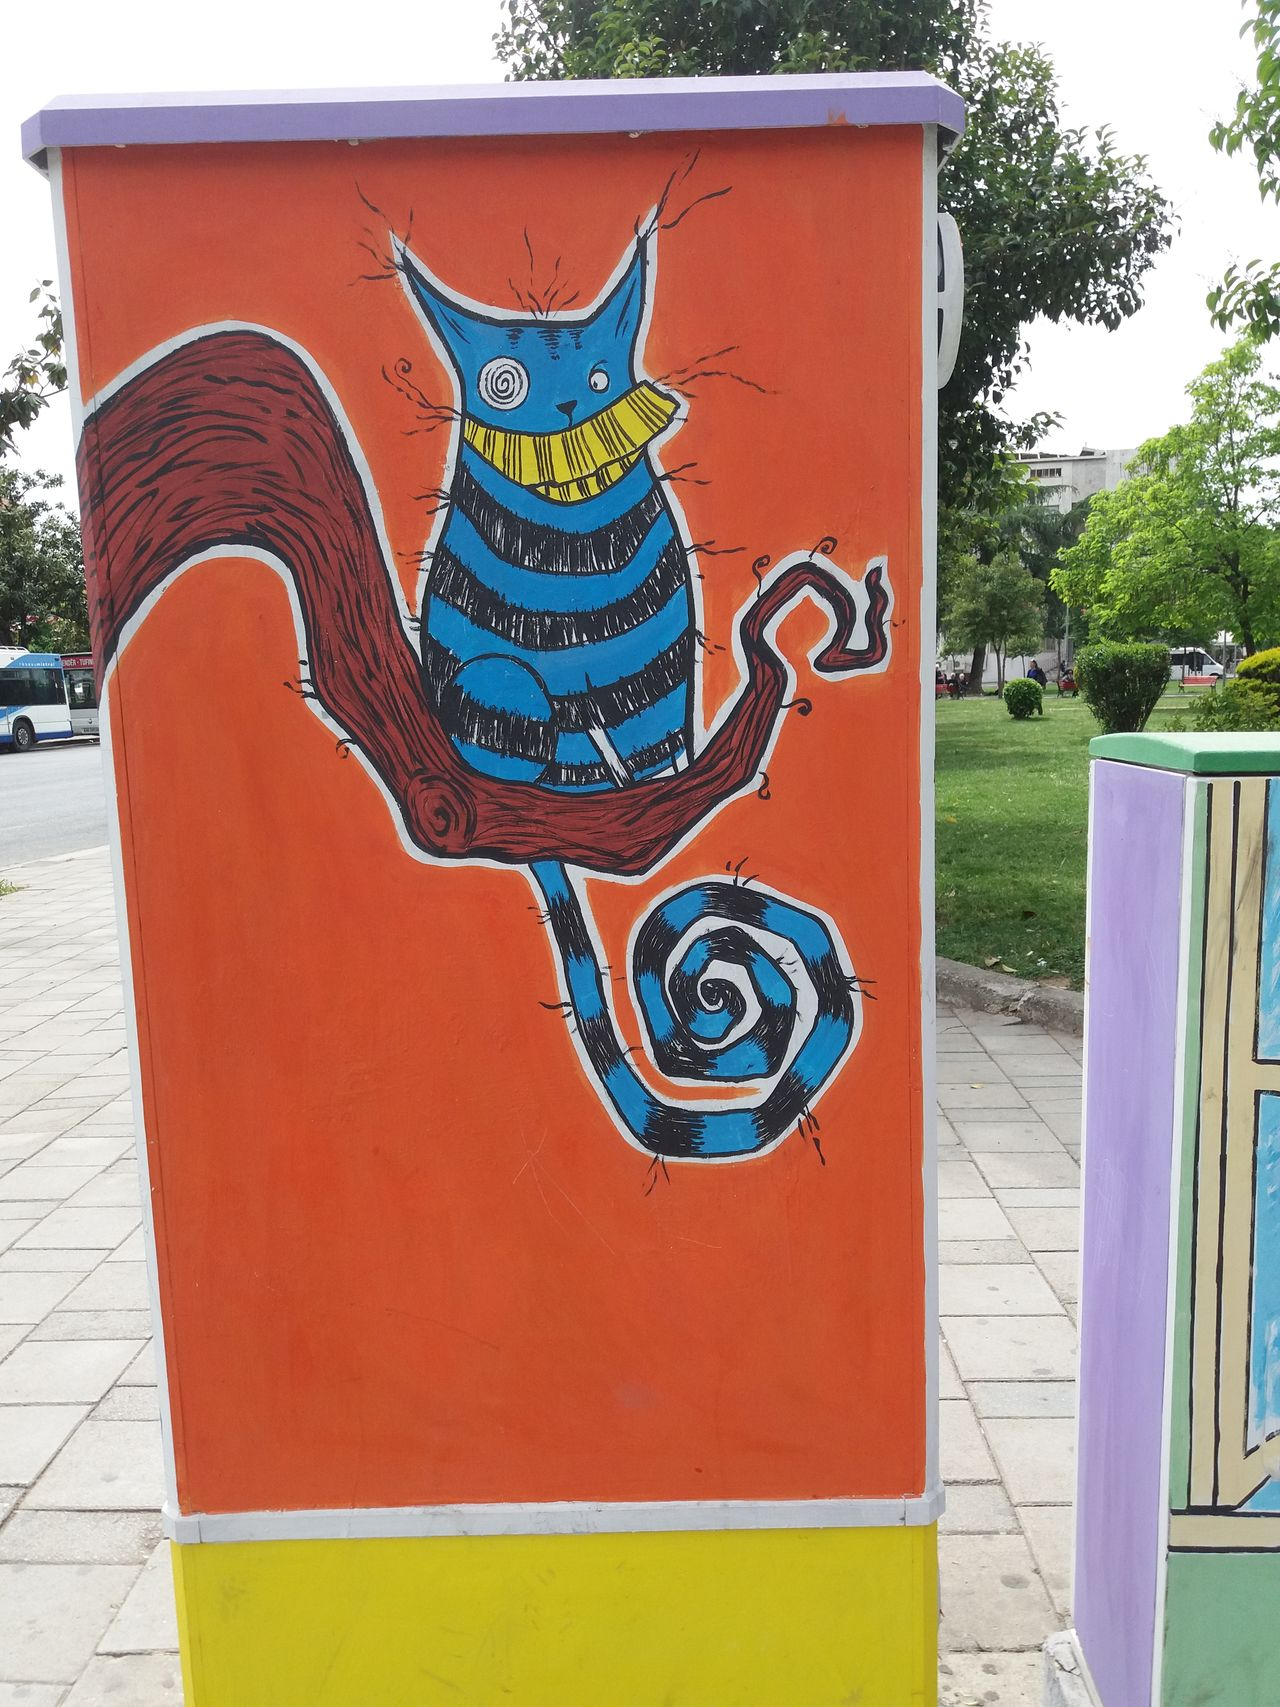 Chesshire Aliceinwonderland Street Art/Graffiti Graffiti Outdoors Day No People Thecat Crazy Art Colors UrbanART Imnotcrazy Roads Brances Nofilter Original Tirana Albania